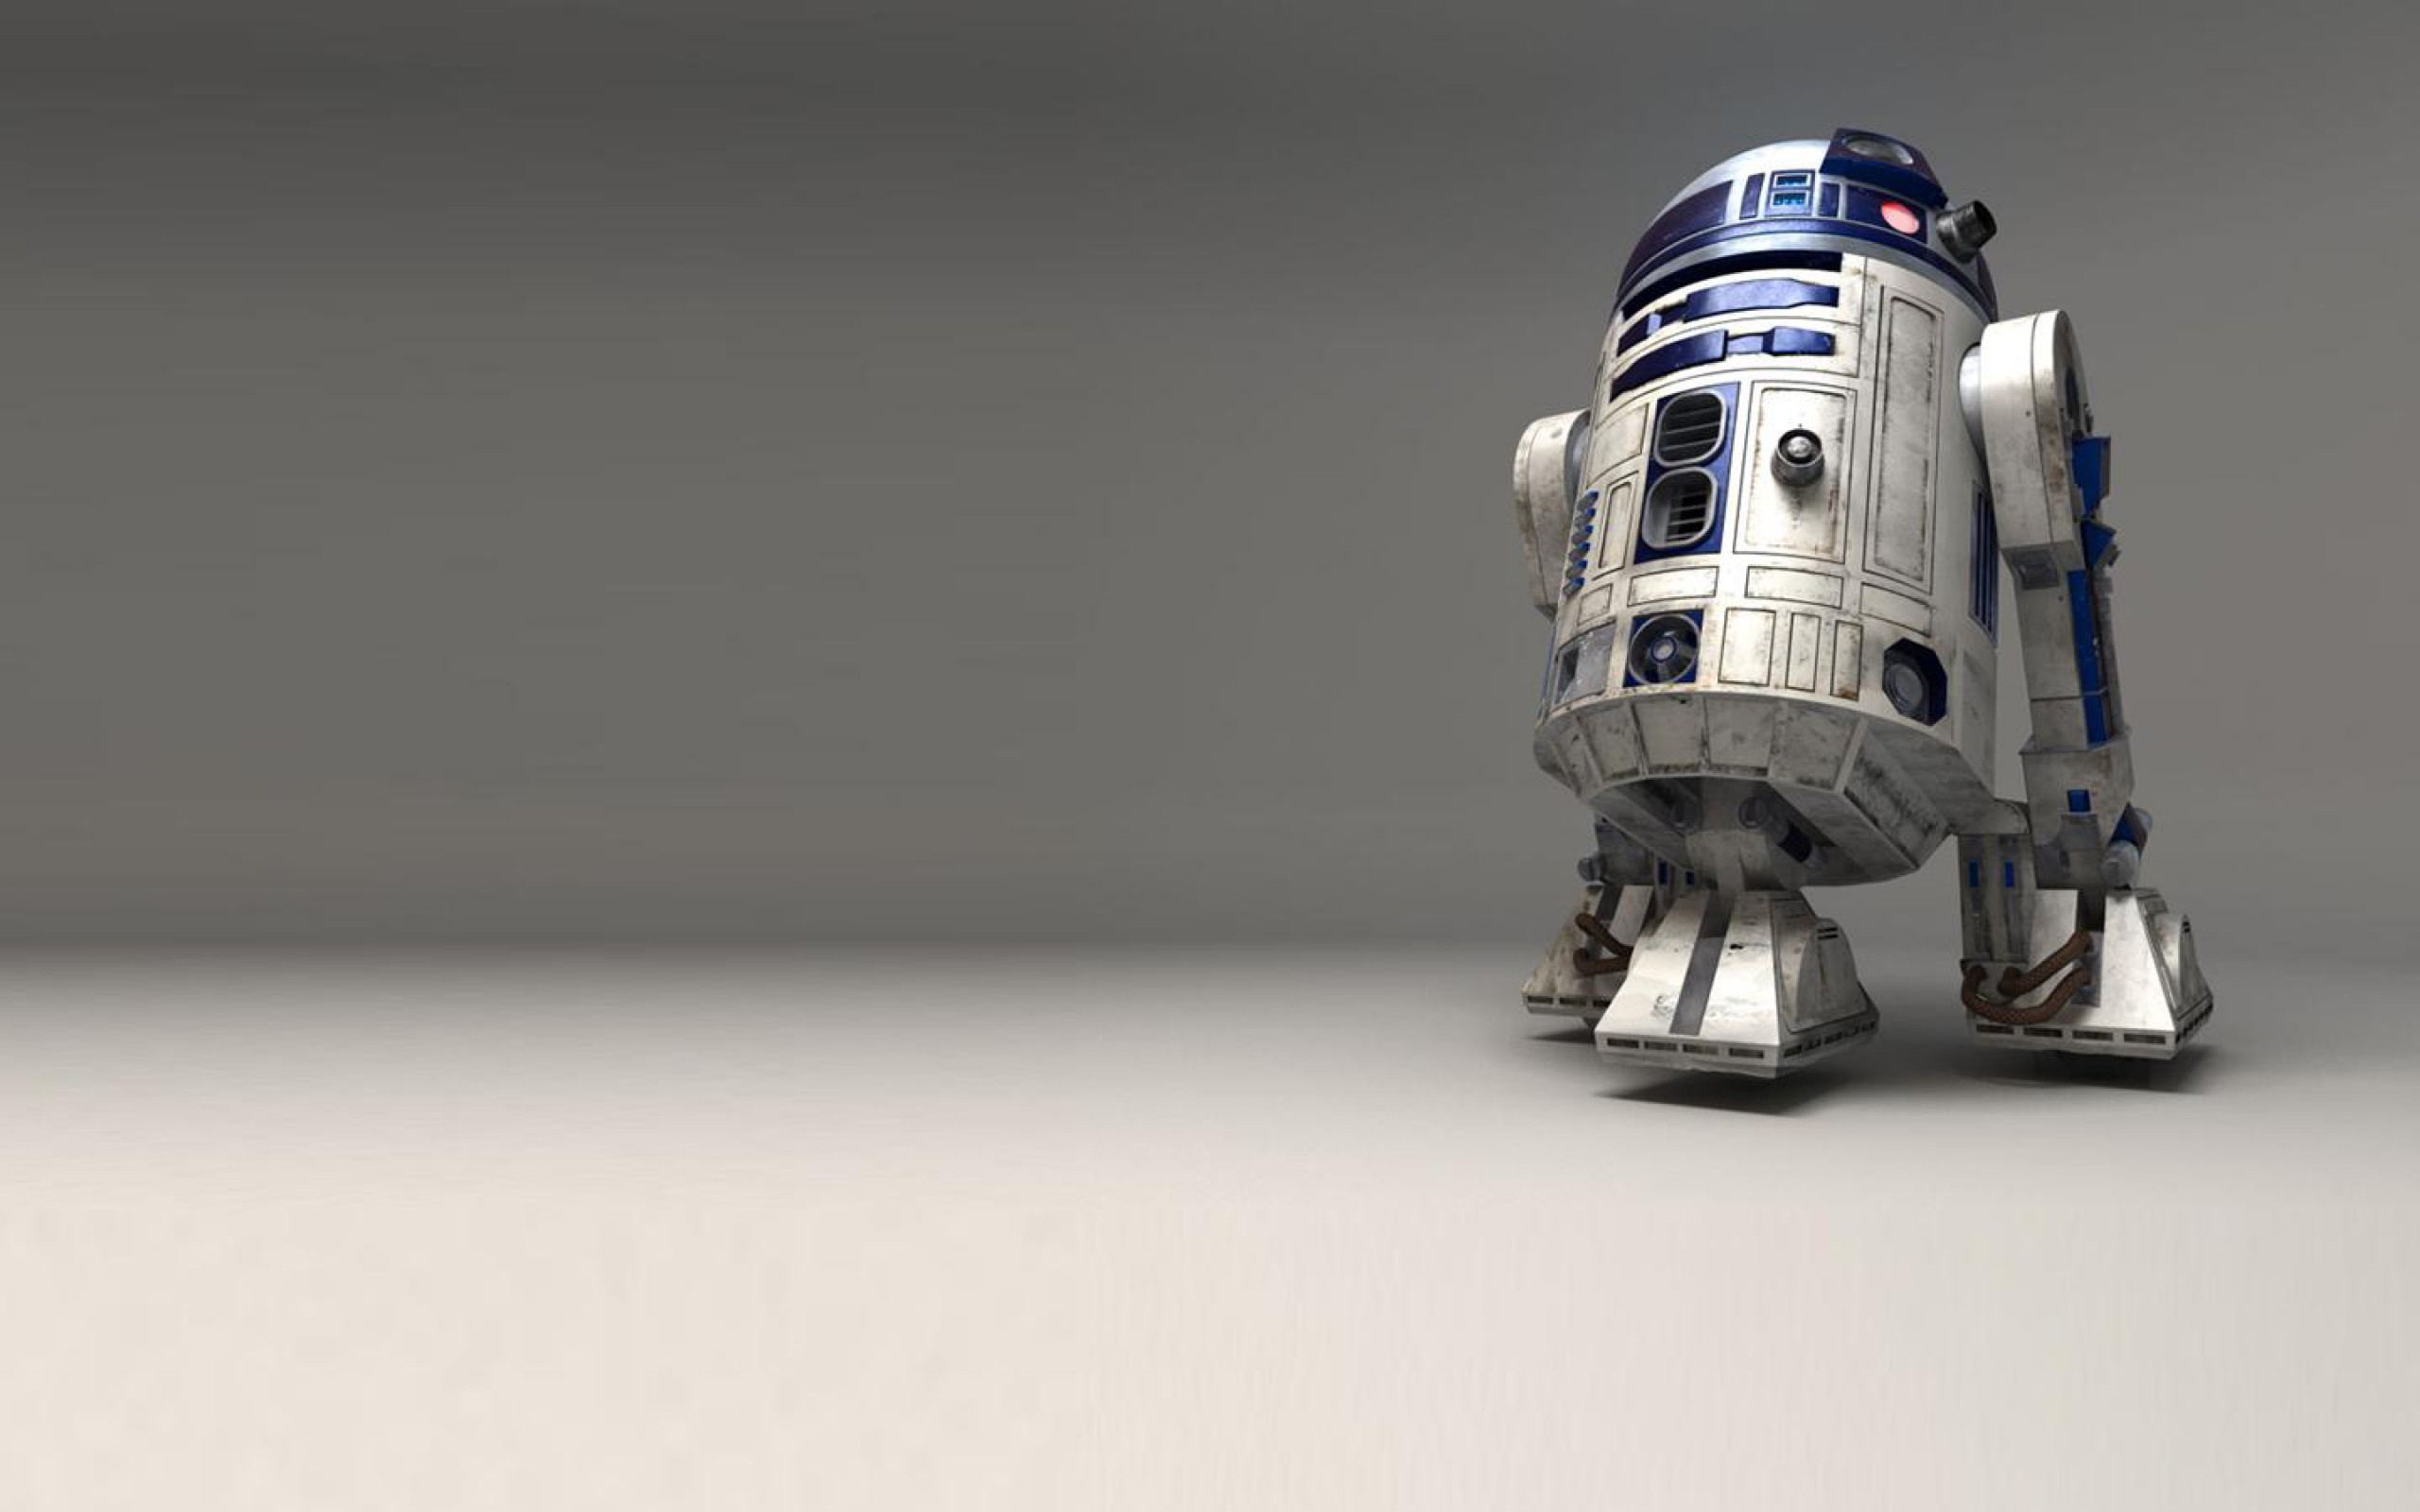 2560x1600 20180611 Star Wars HD Wallpaper 1600x900